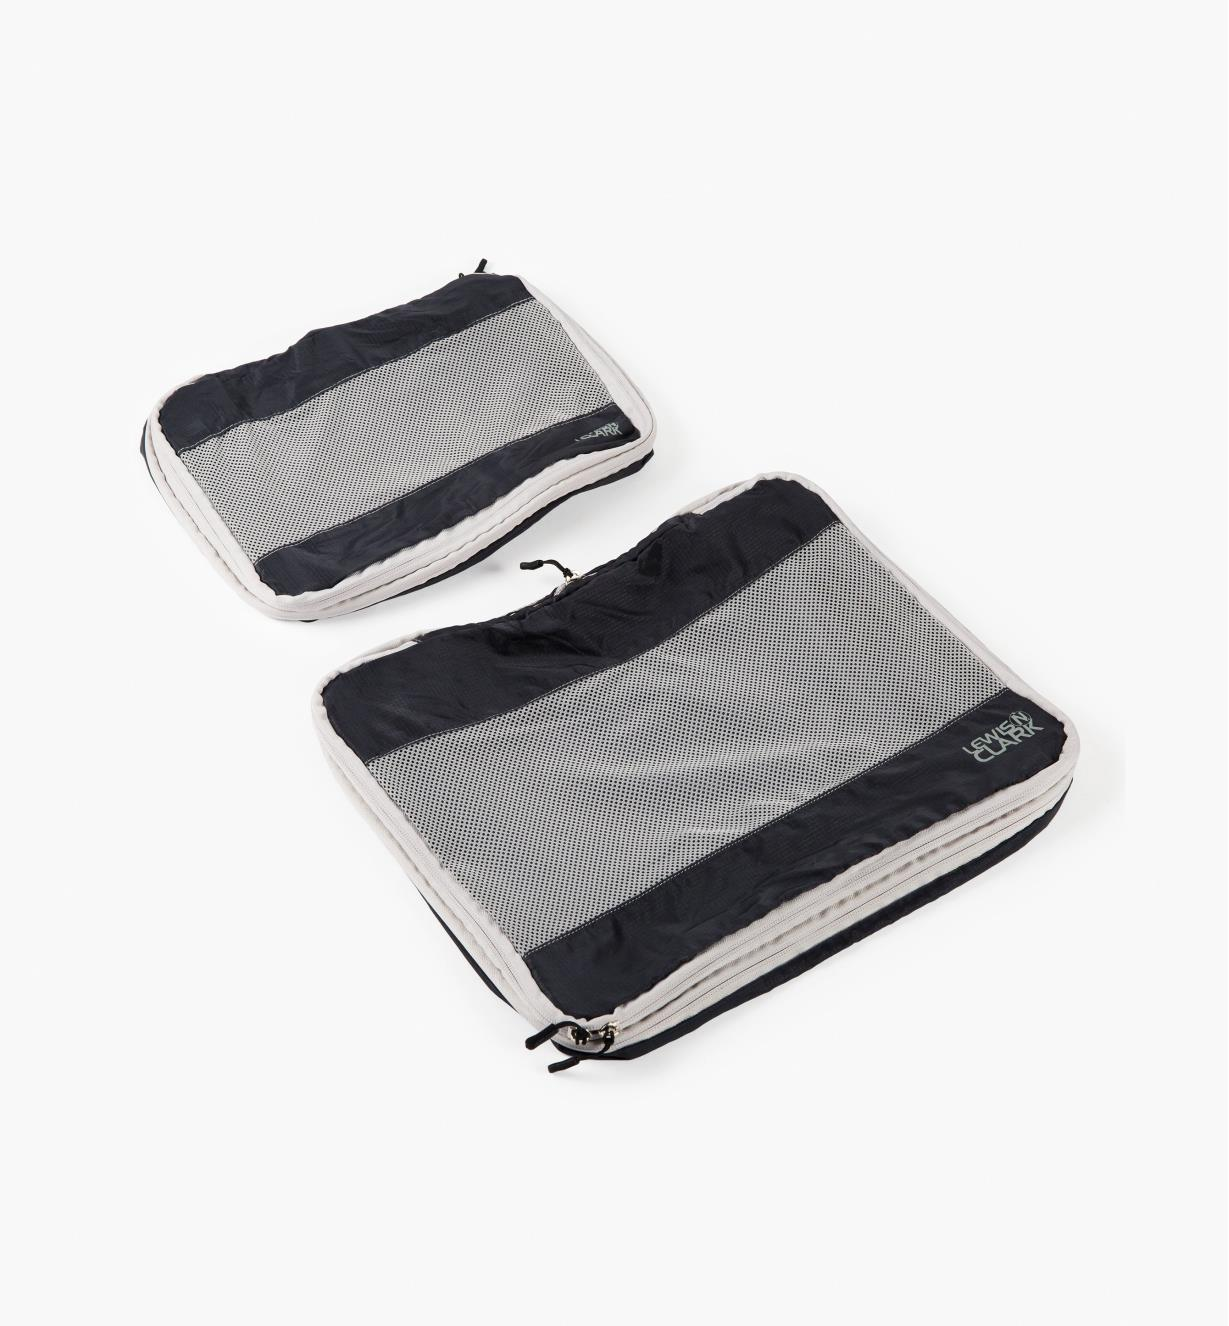 GB359 - Gray Expandable Packing Cubes, set of 2